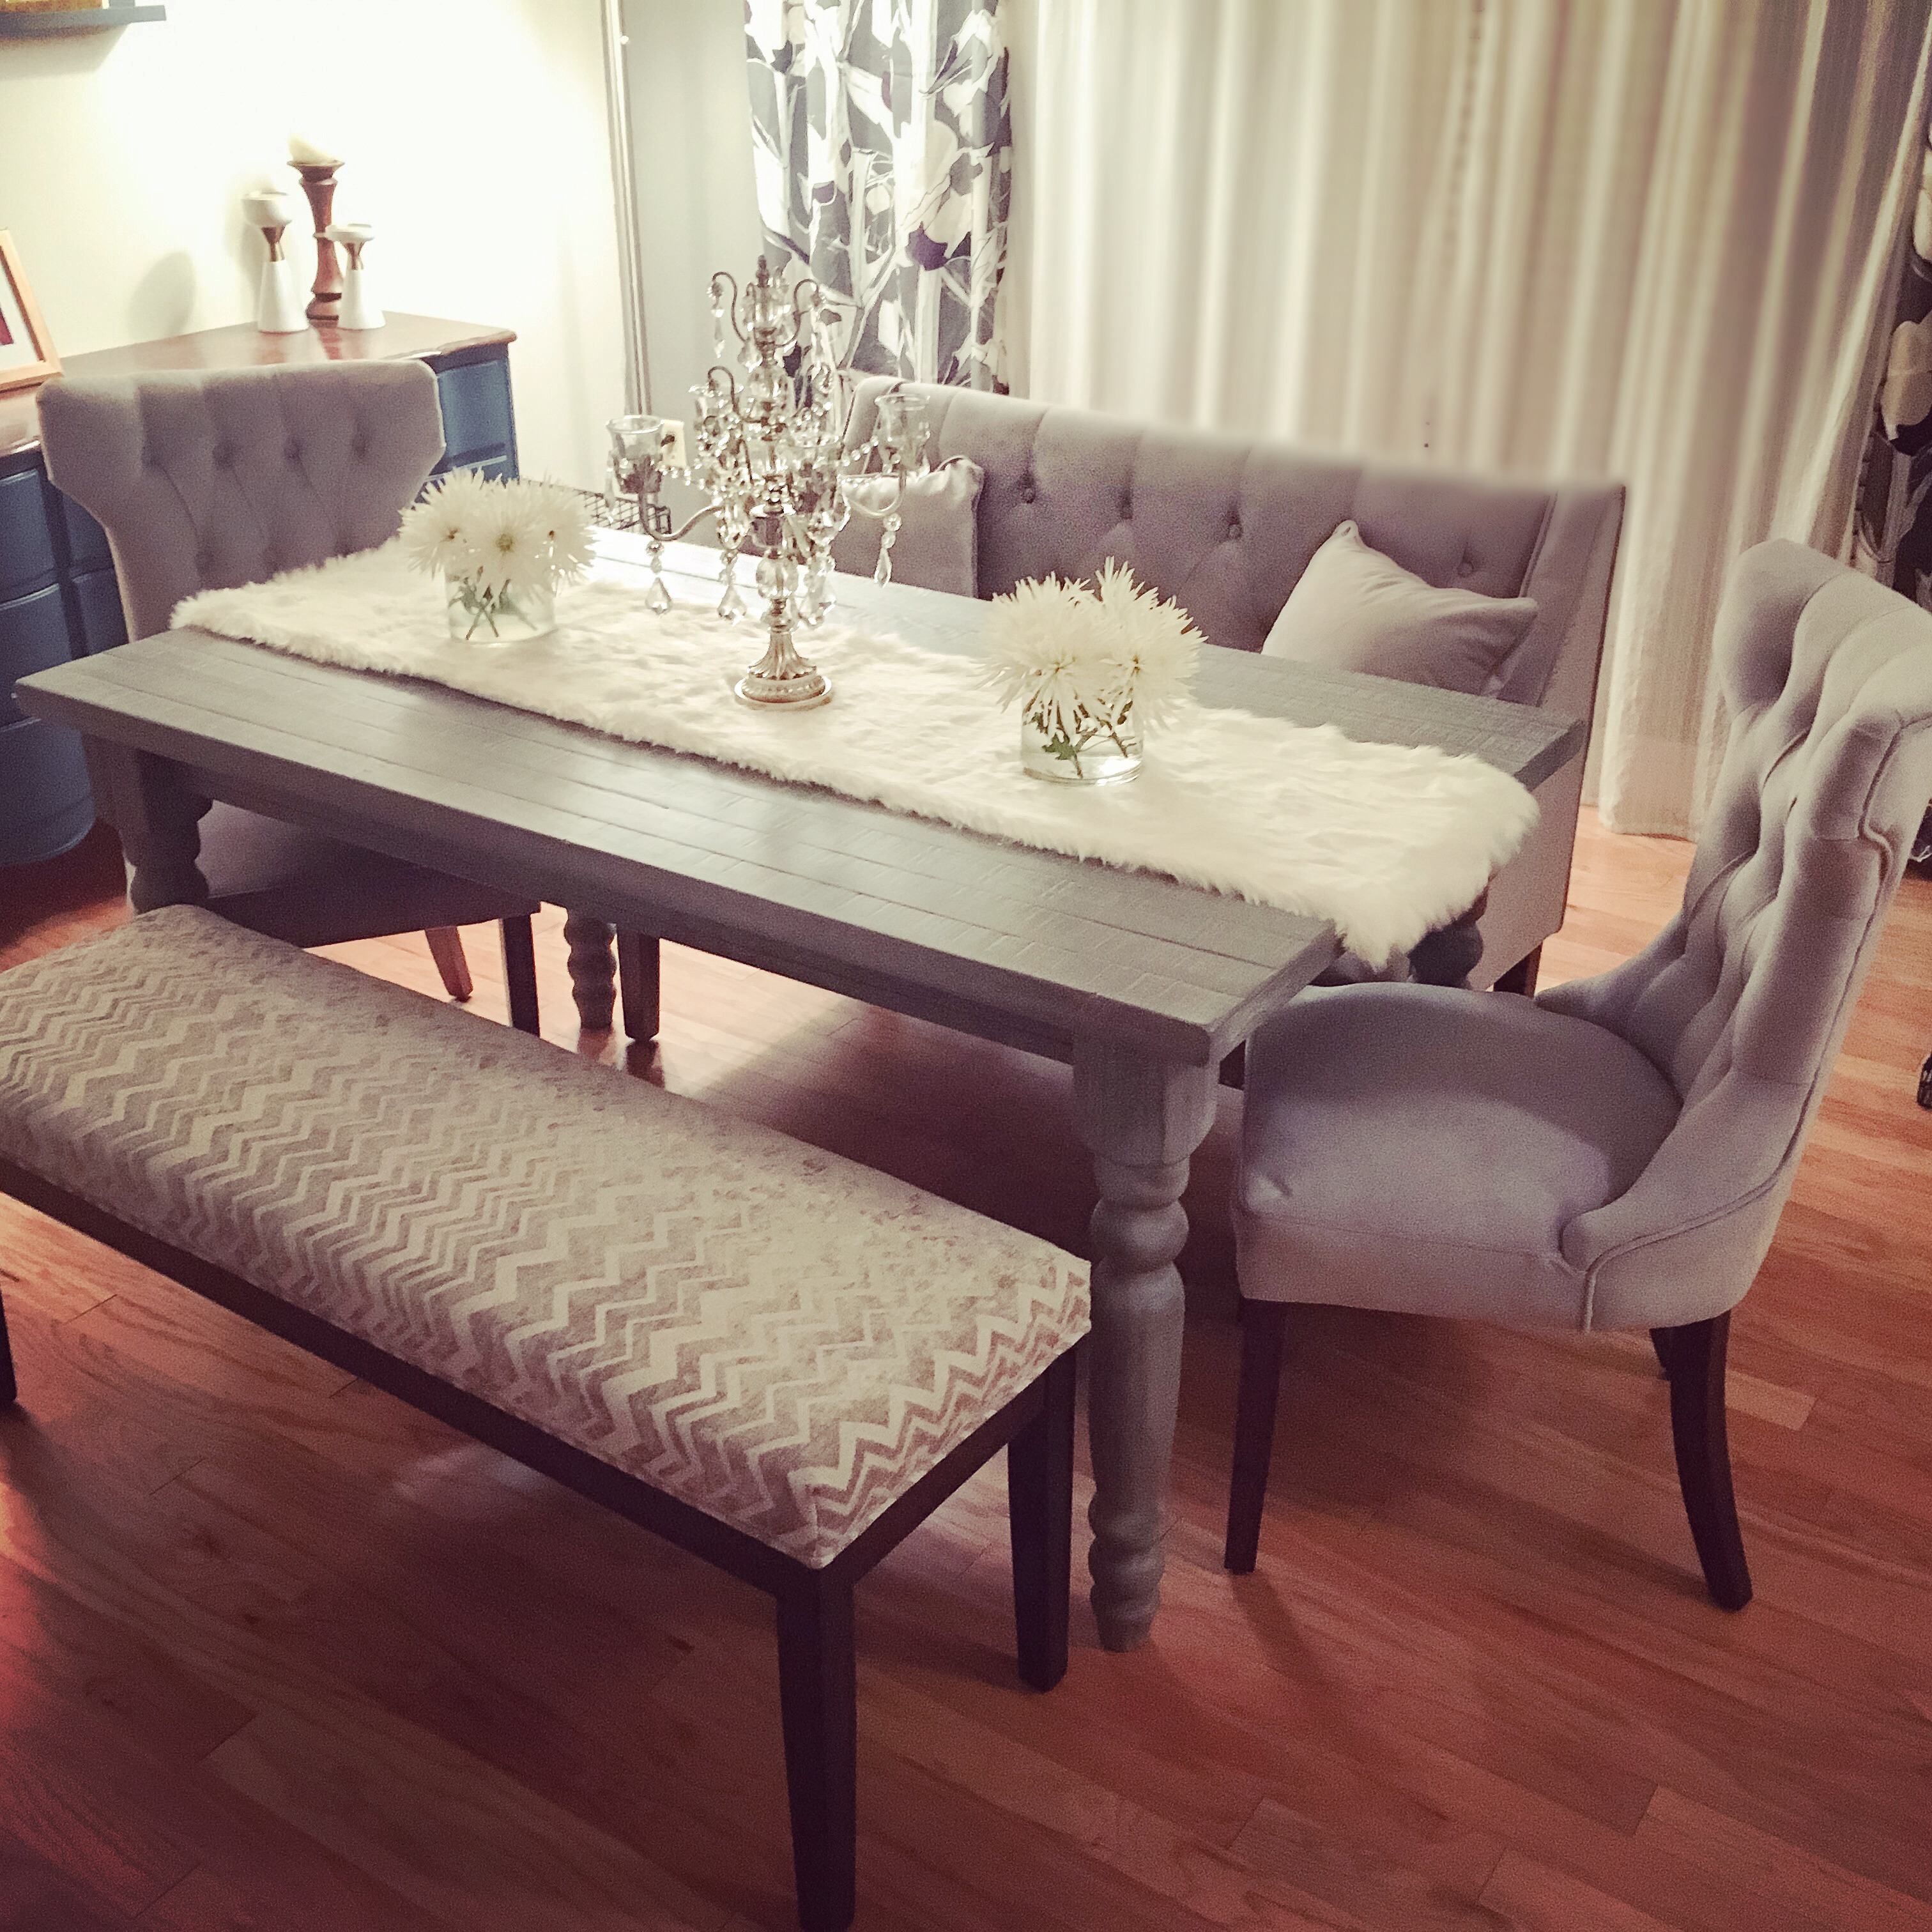 chairs wingback accent chair for dining room model plus enjoyable furniture grey tufted wood table bench laminated floor with arms knoll life parts interior design ideas living